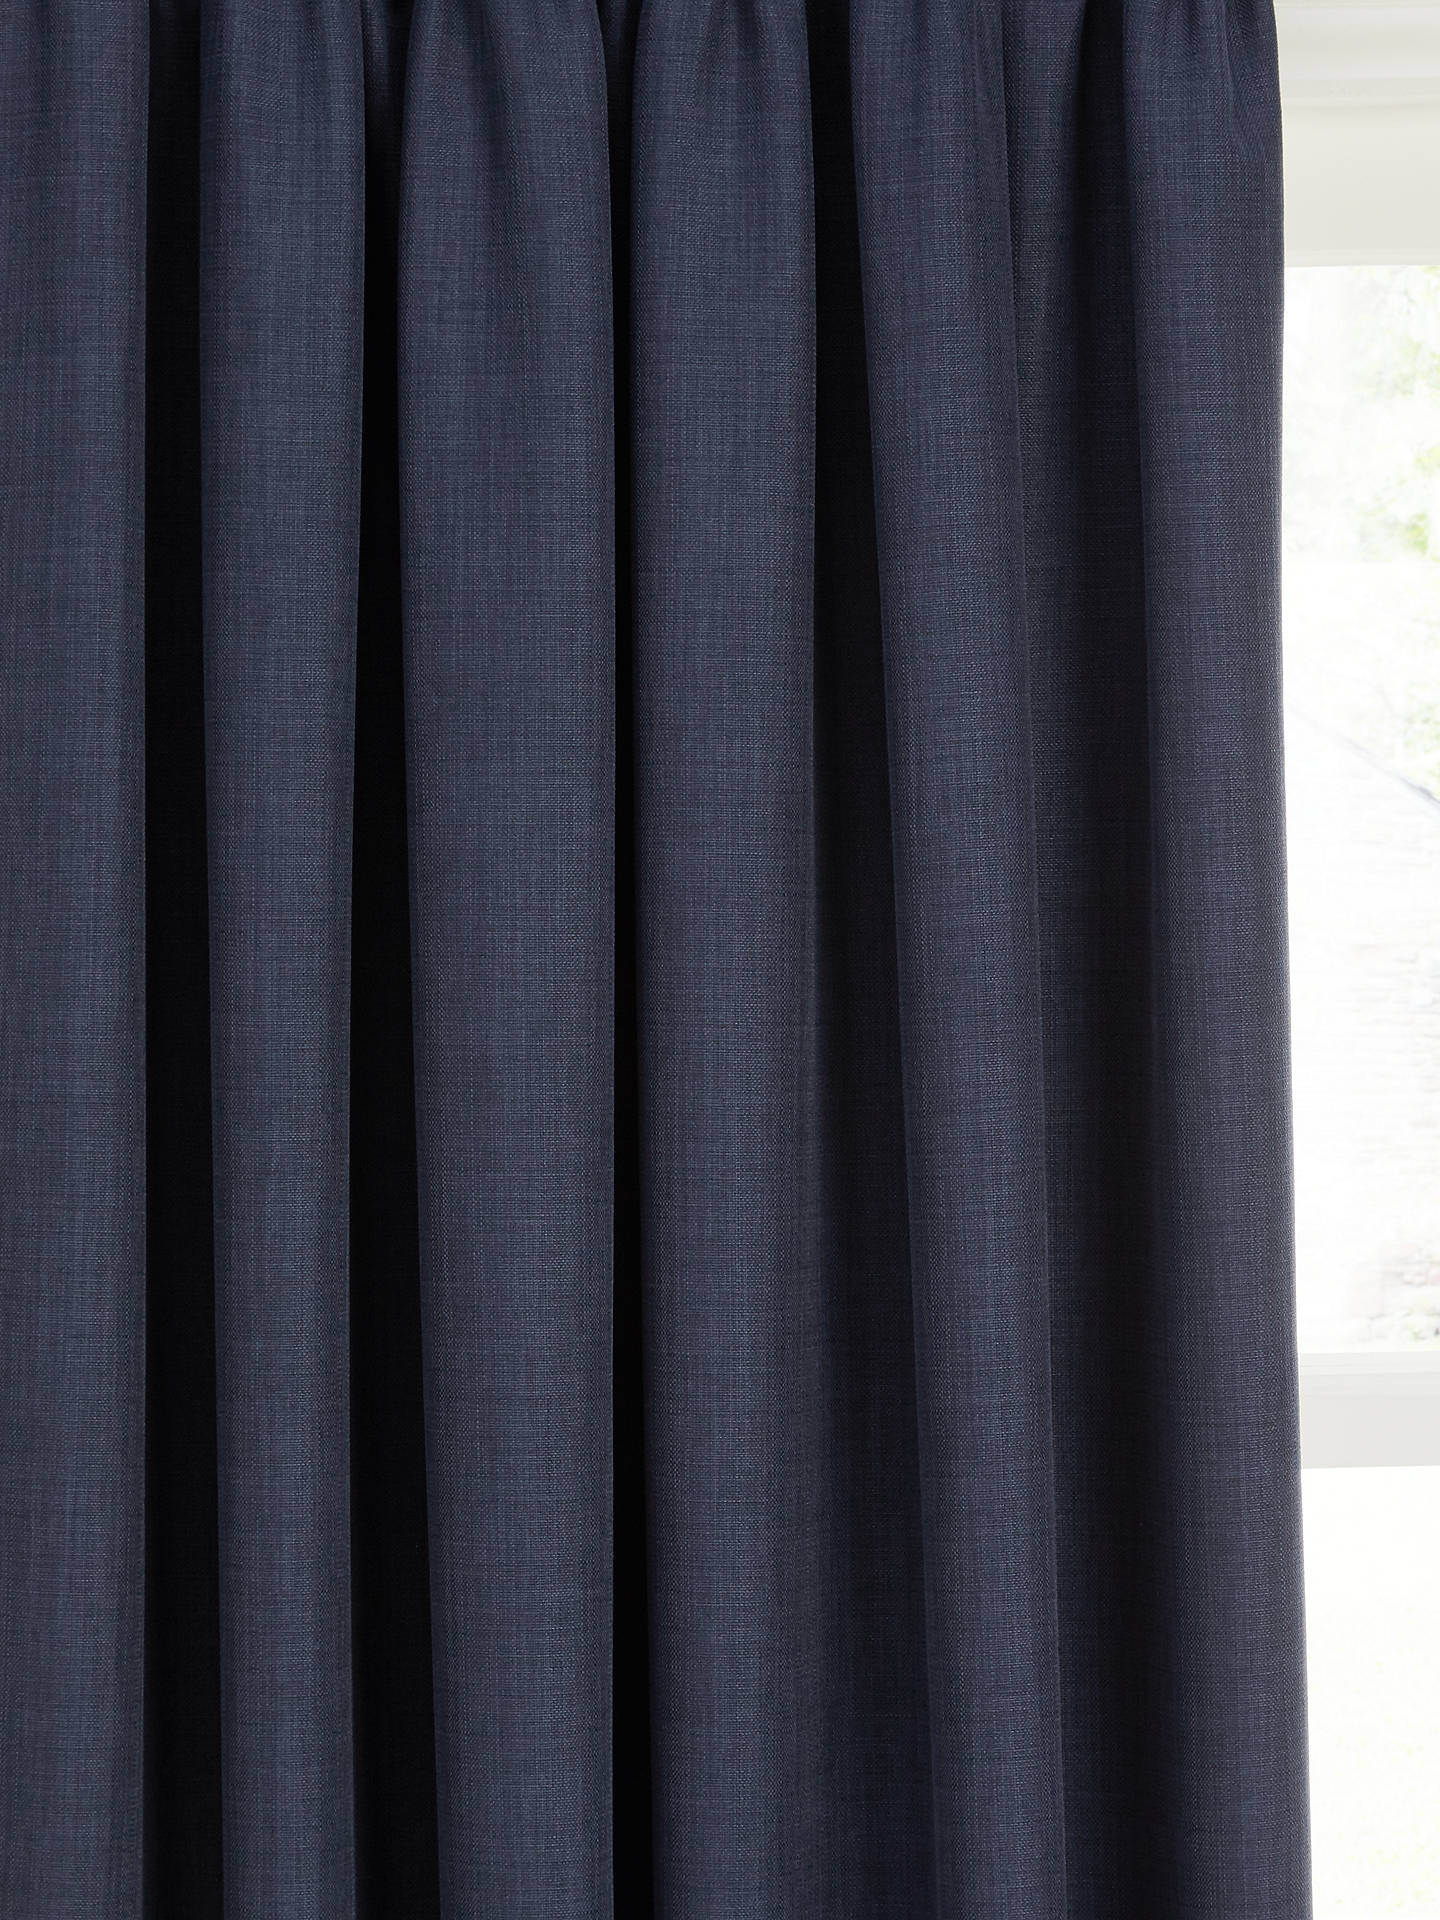 Buy John Lewis & Partners Barathea Pair Blackout Lined Pencil Pleat Curtains, Navy, W167 x Drop 228cm Online at johnlewis.com